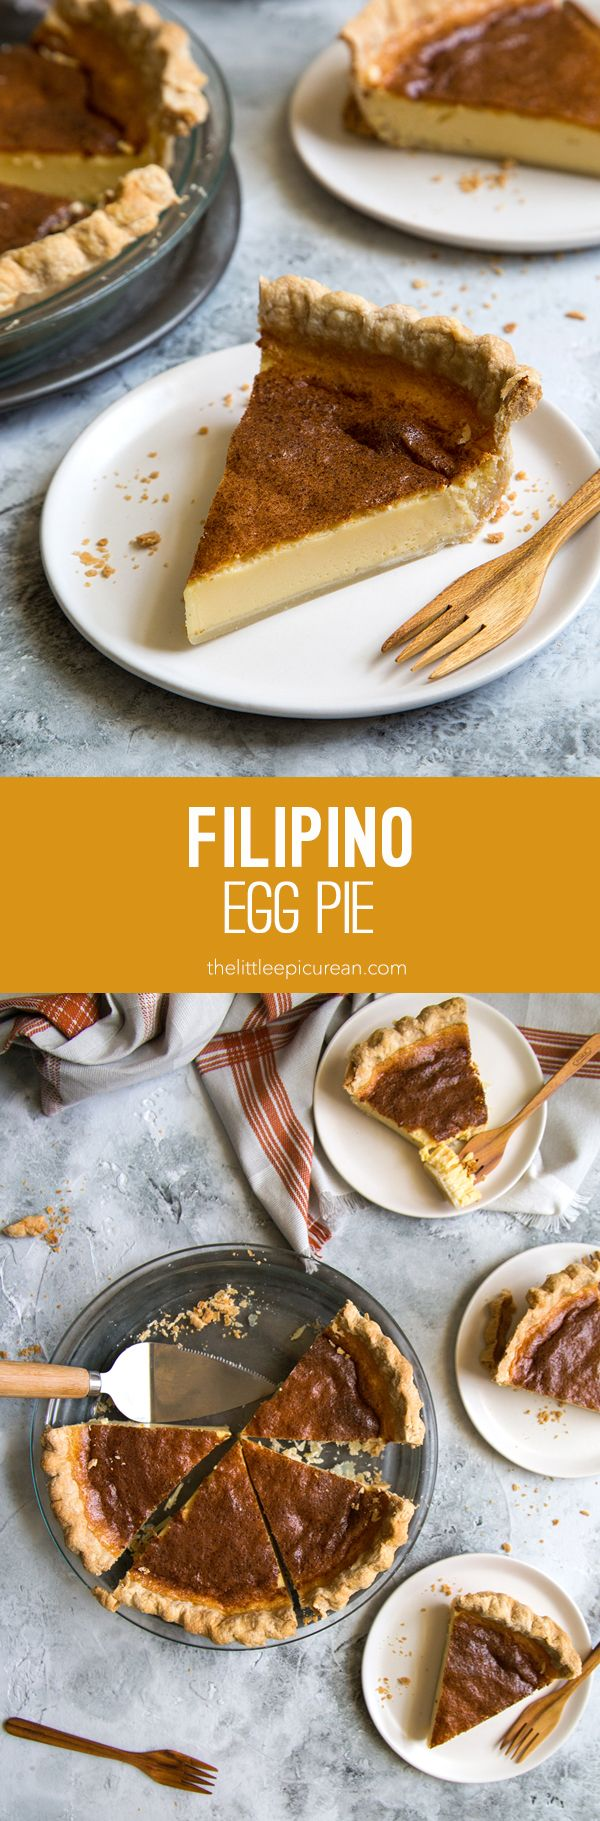 Filipino Egg Pie: custard pie slowly baked in a flakey butter crust. It is a popular Filipino dessert made with milk, sugar, and eggs.